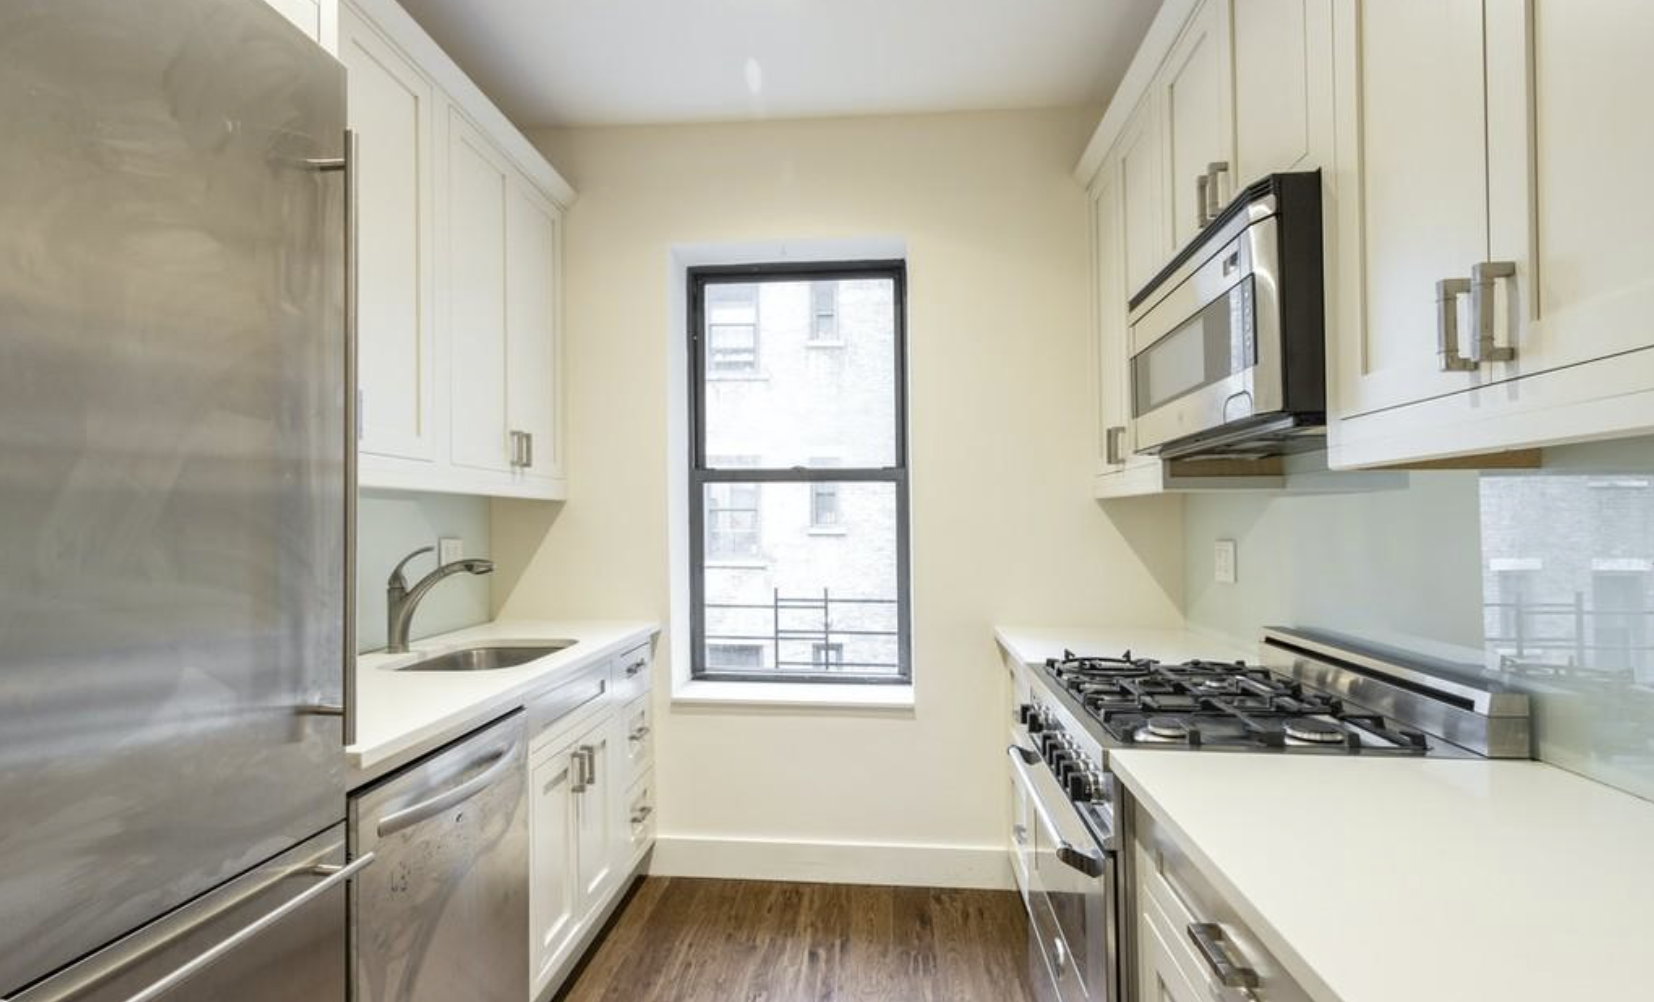 The NYC Apartment Barack Obama Once Rented With Roommates in College Is for Sale